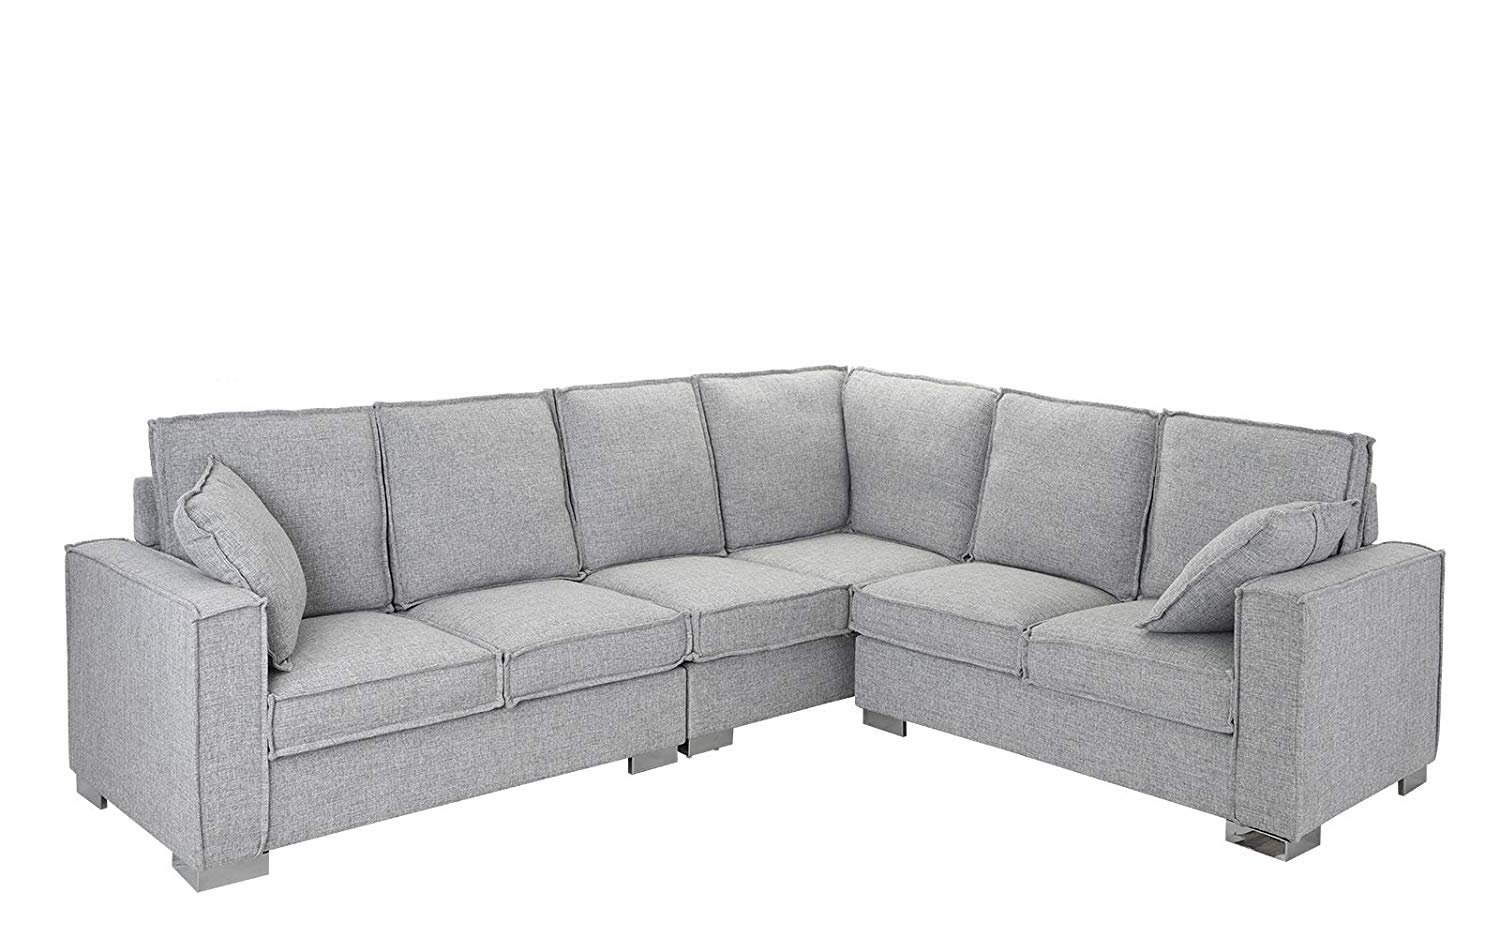 Sofa L Images Large Living Room Fabric Sectional Sofa L Shape Couch Light Grey